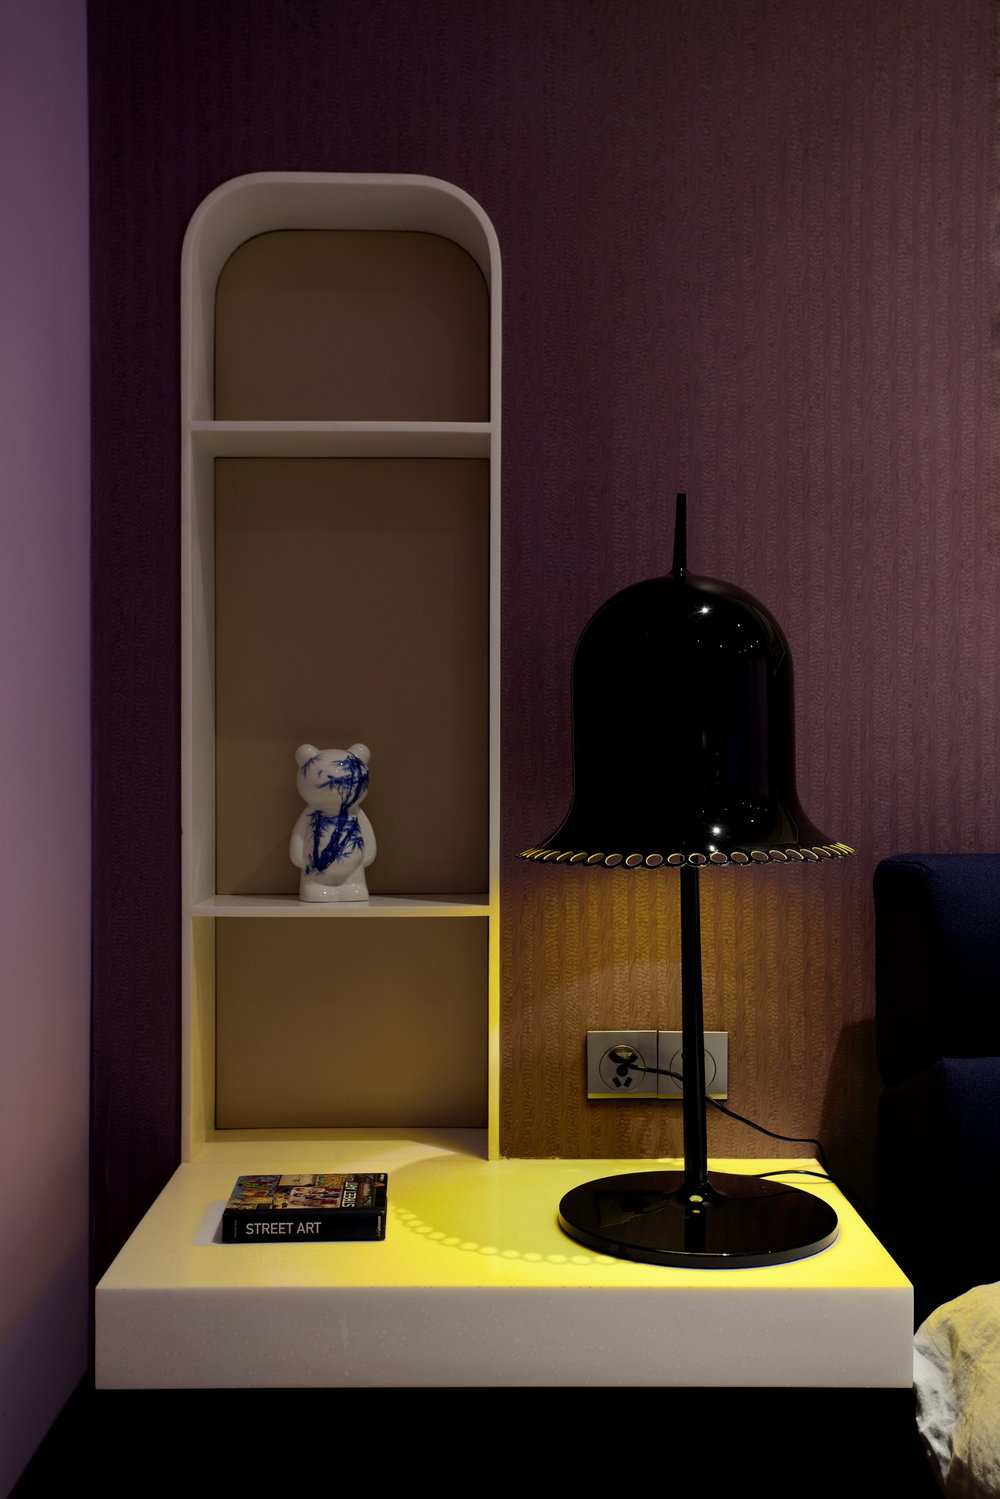 MASTER BEDROOM Lilac textured walls with Corian headboard and shelving system. On the table Lolita lamp by Moooi